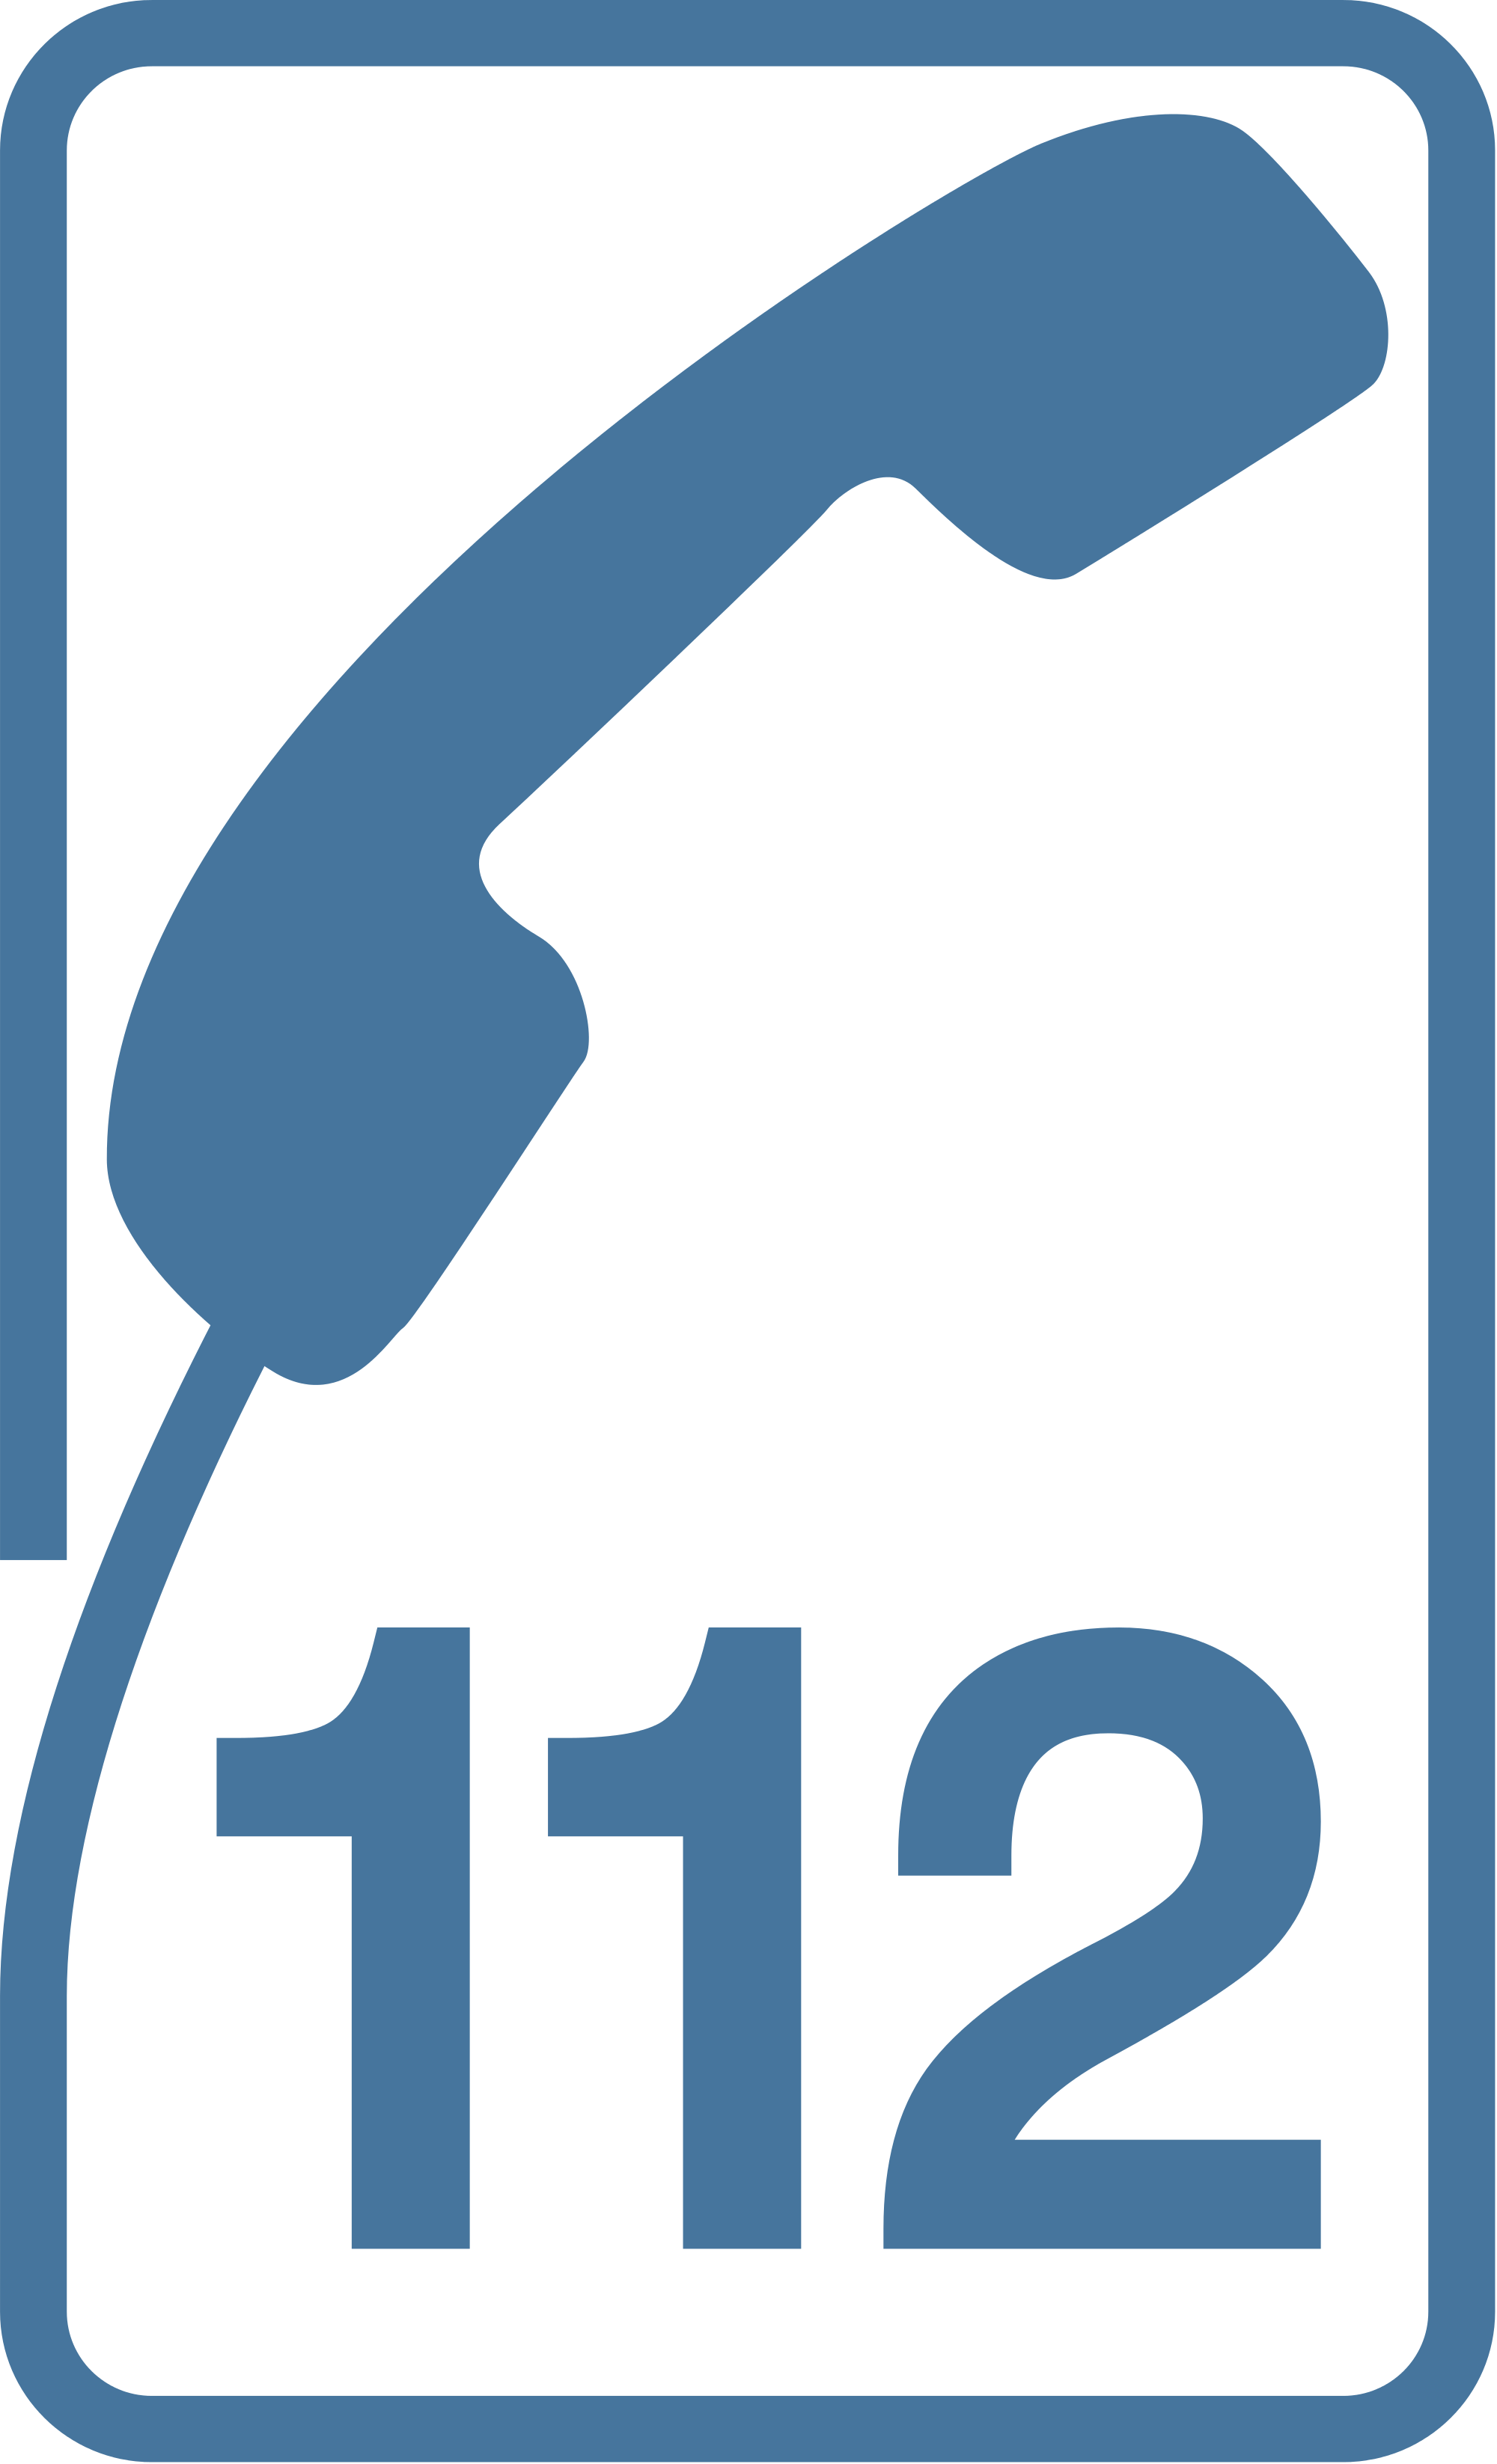 File number svg wikimedia. Telephone clipart emergency phone